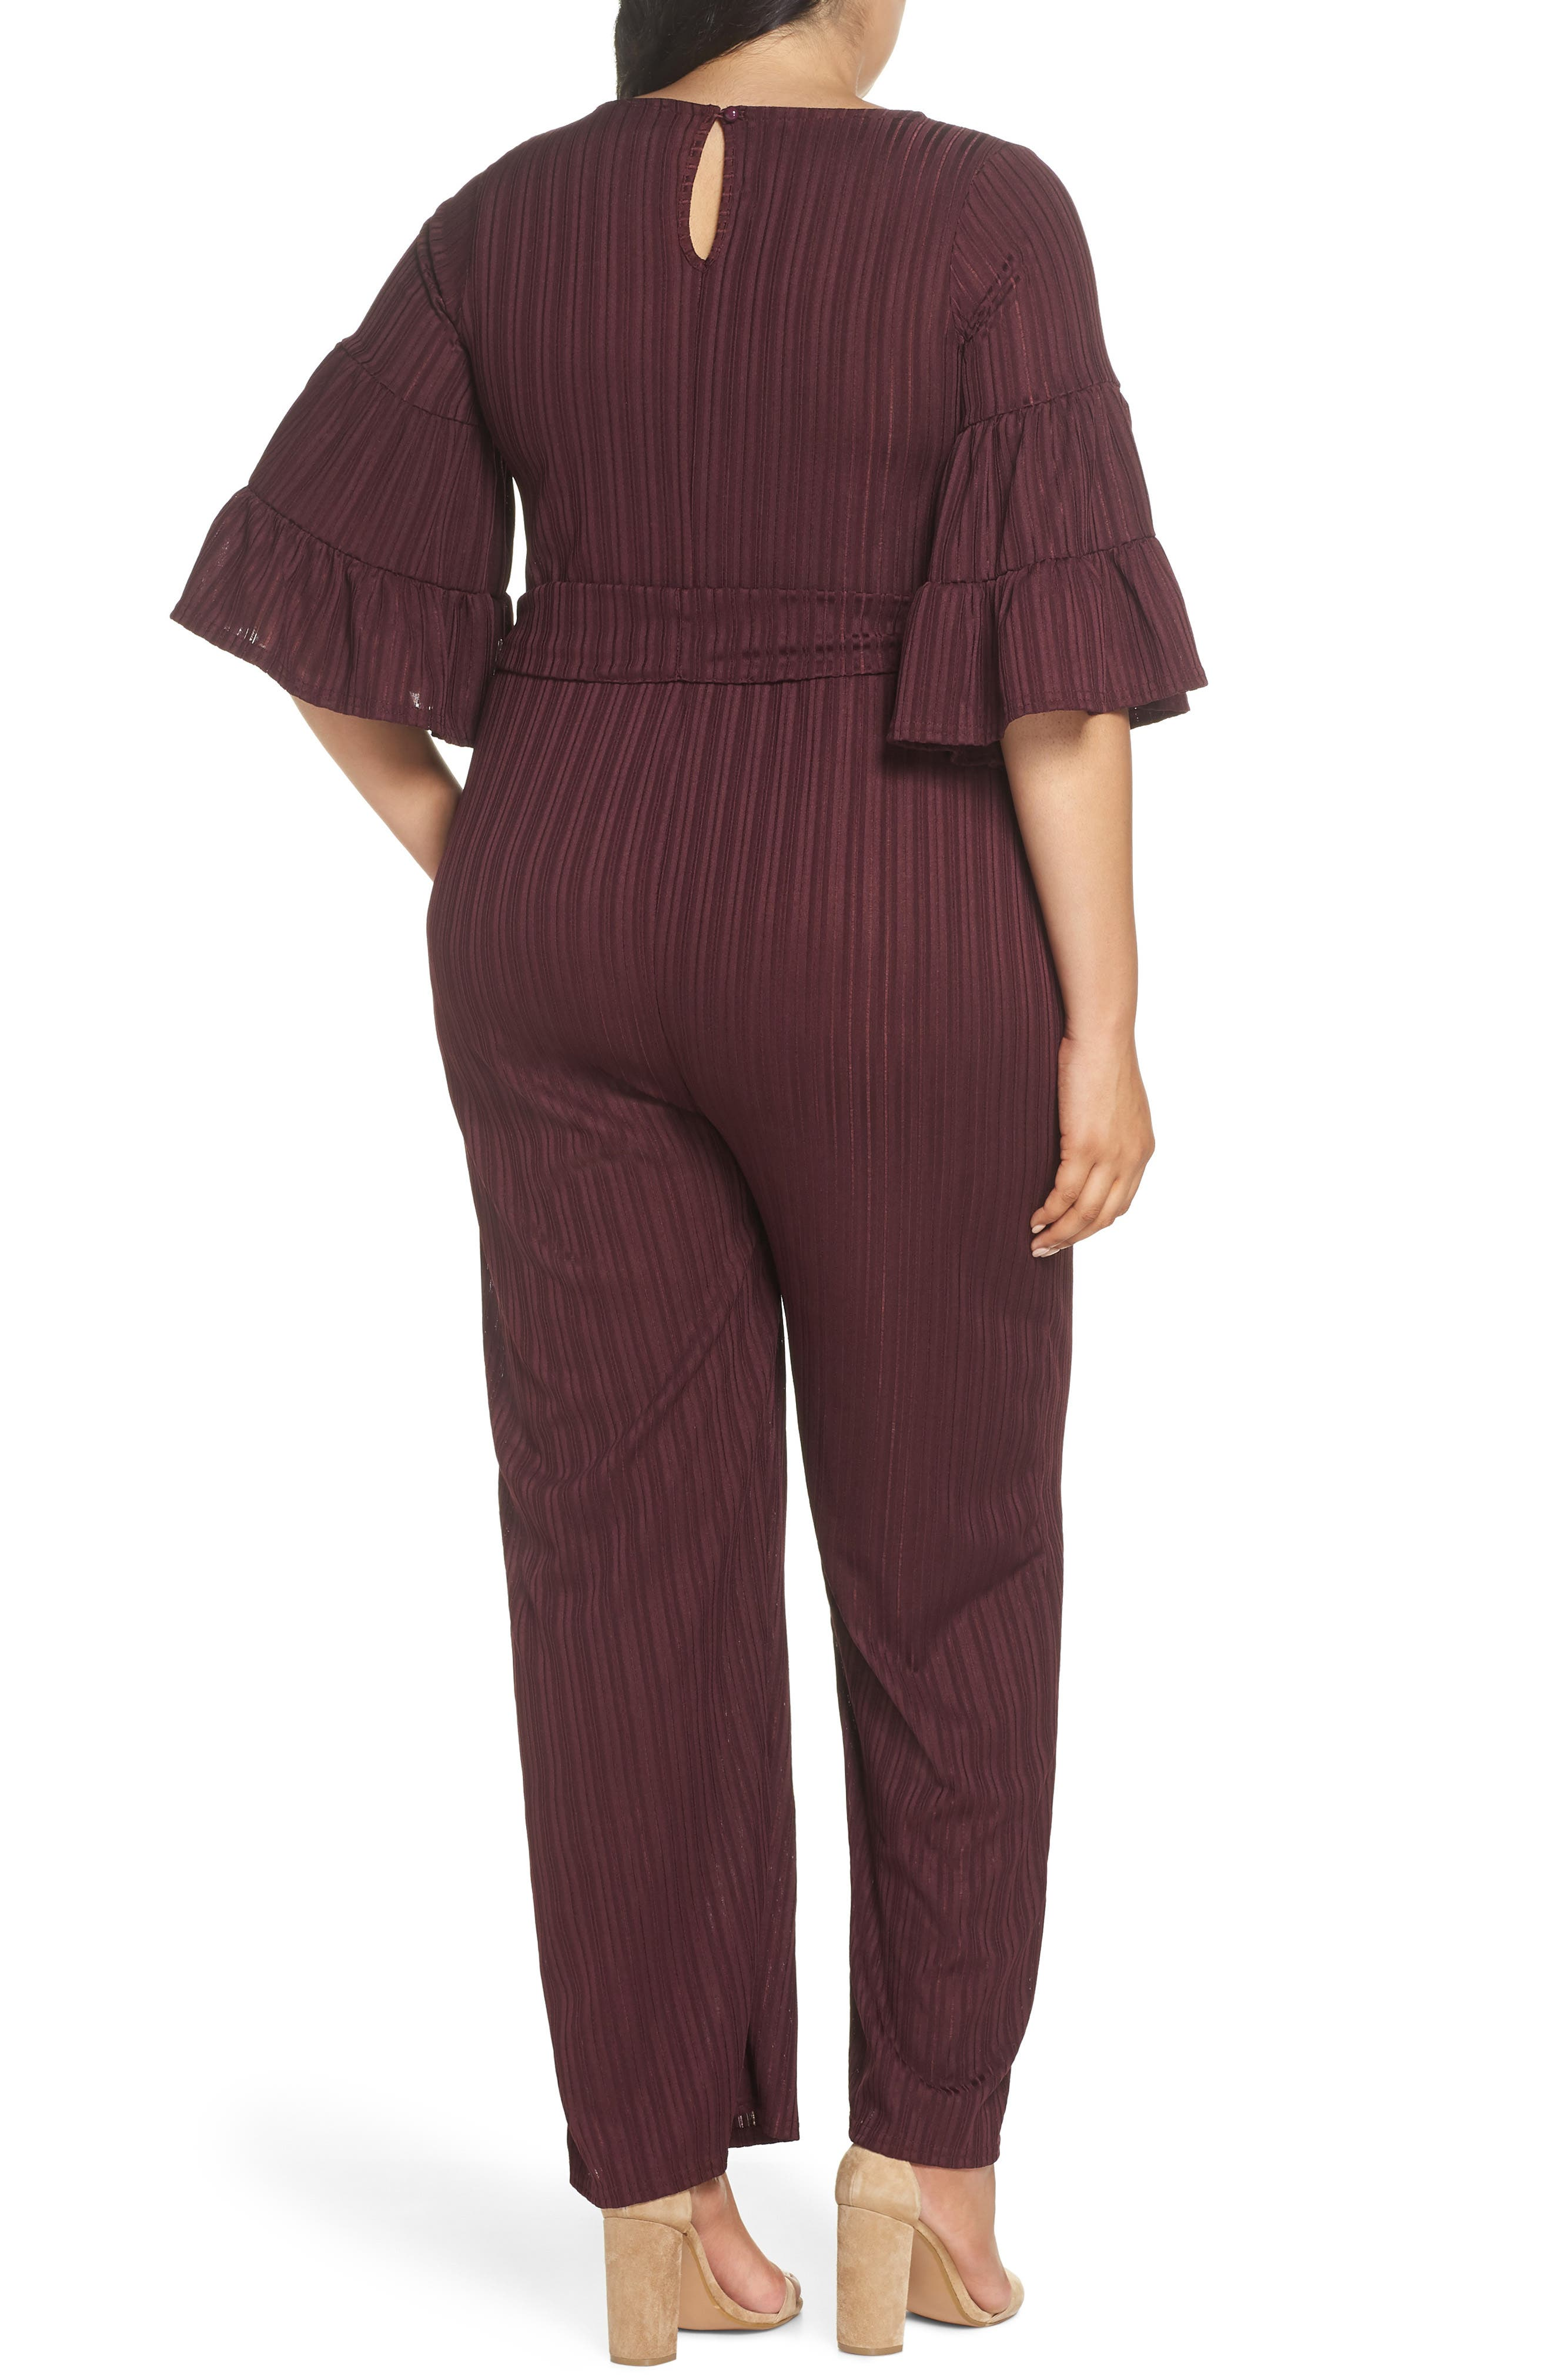 Ruffle Sleeve Jumpsuit,                             Alternate thumbnail 2, color,                             500